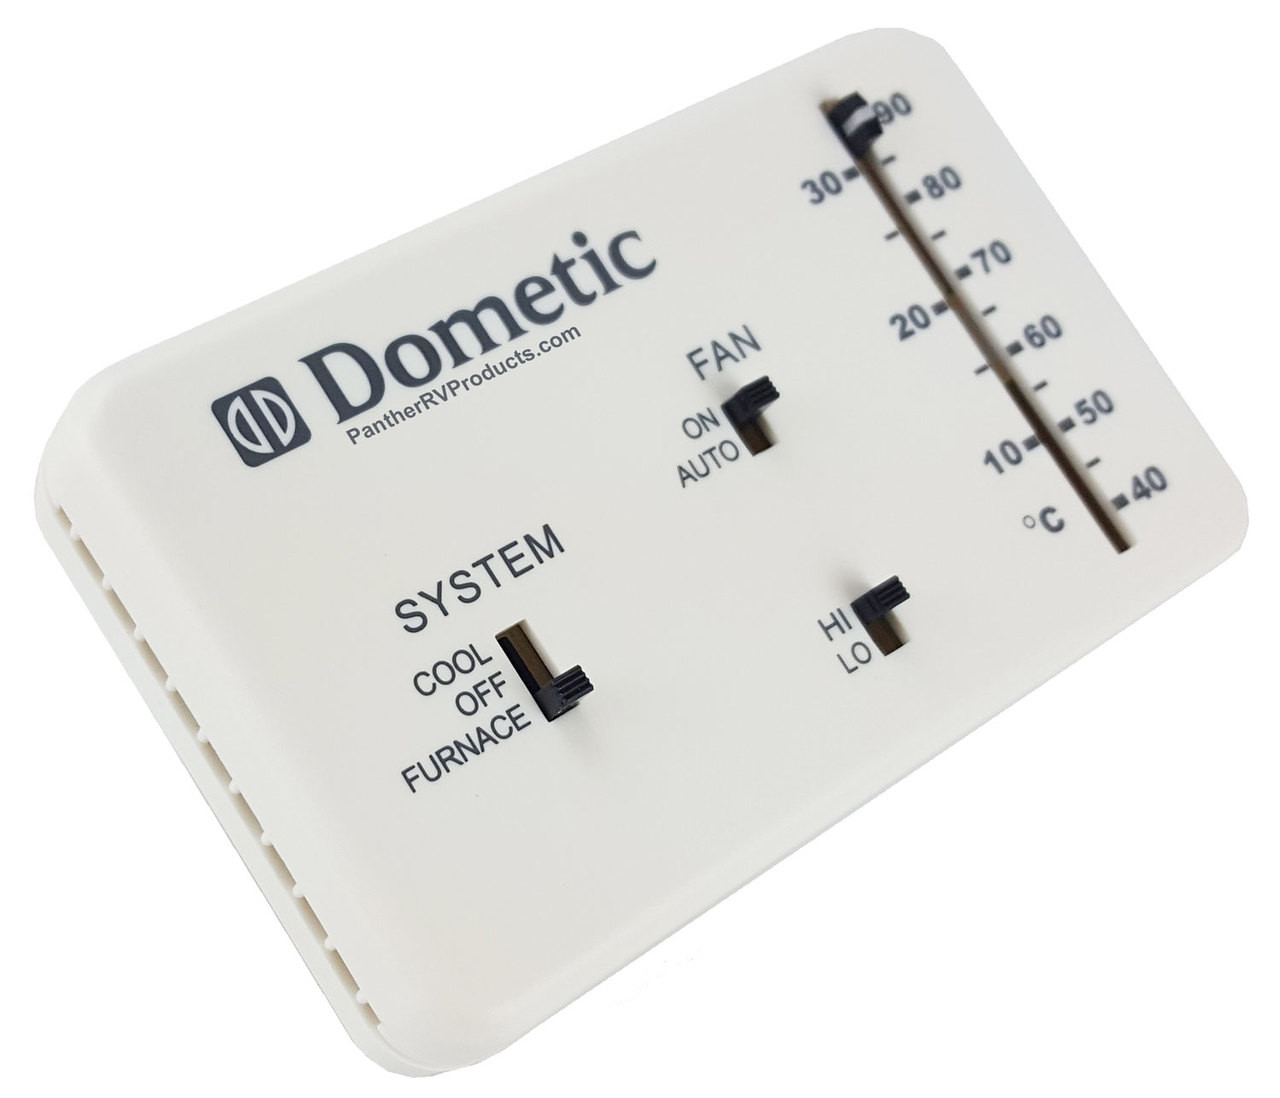 Duo Therm Thermostat 3106995 032 Wiring Diagram Blogs 6 Wire Diagrams Typical Dometic